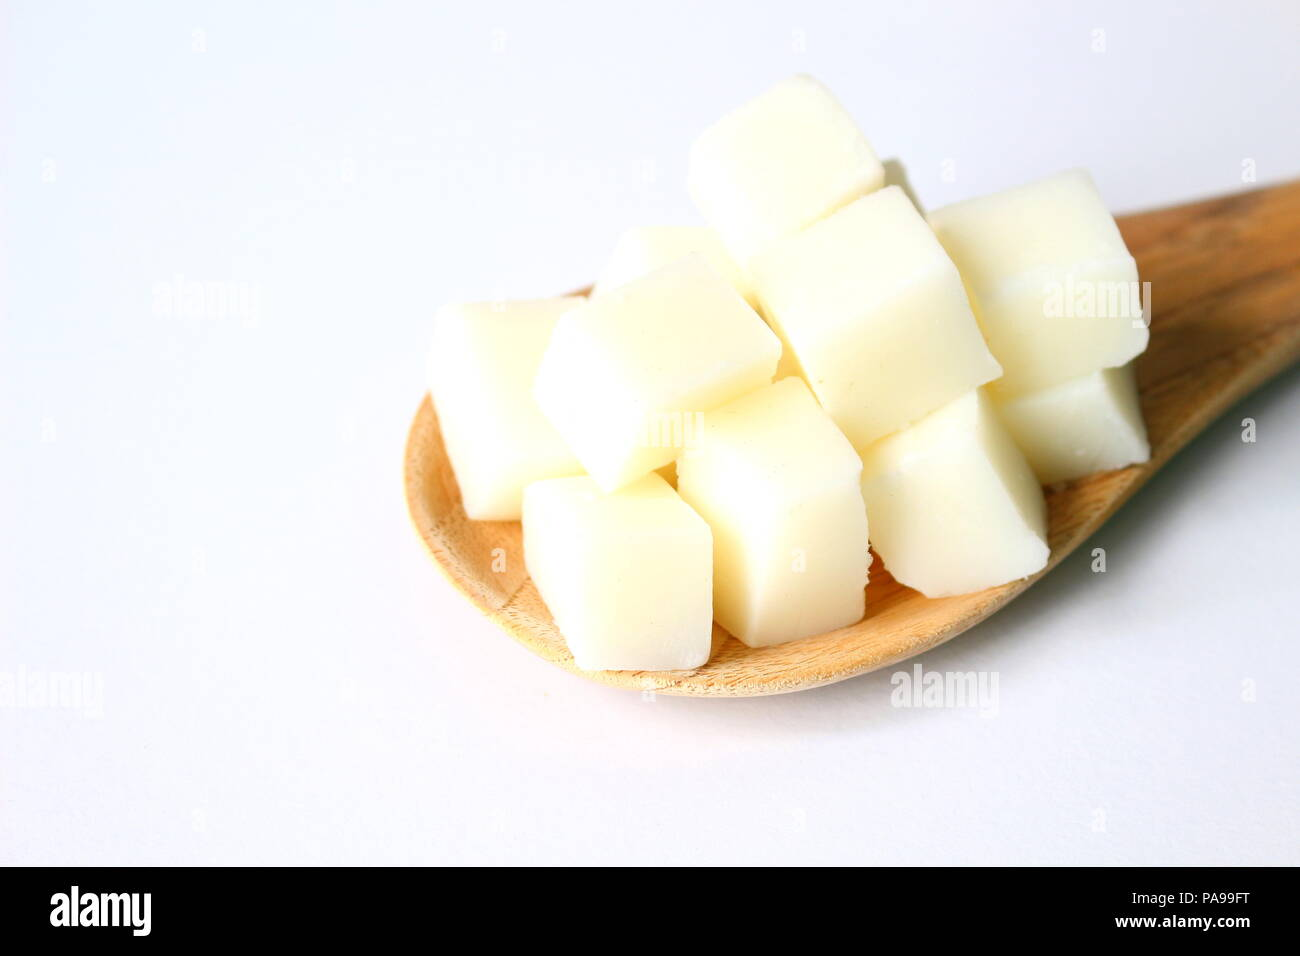 Close up of sliced white glycerin soap bases on wooden paddle on white background. - Stock Image